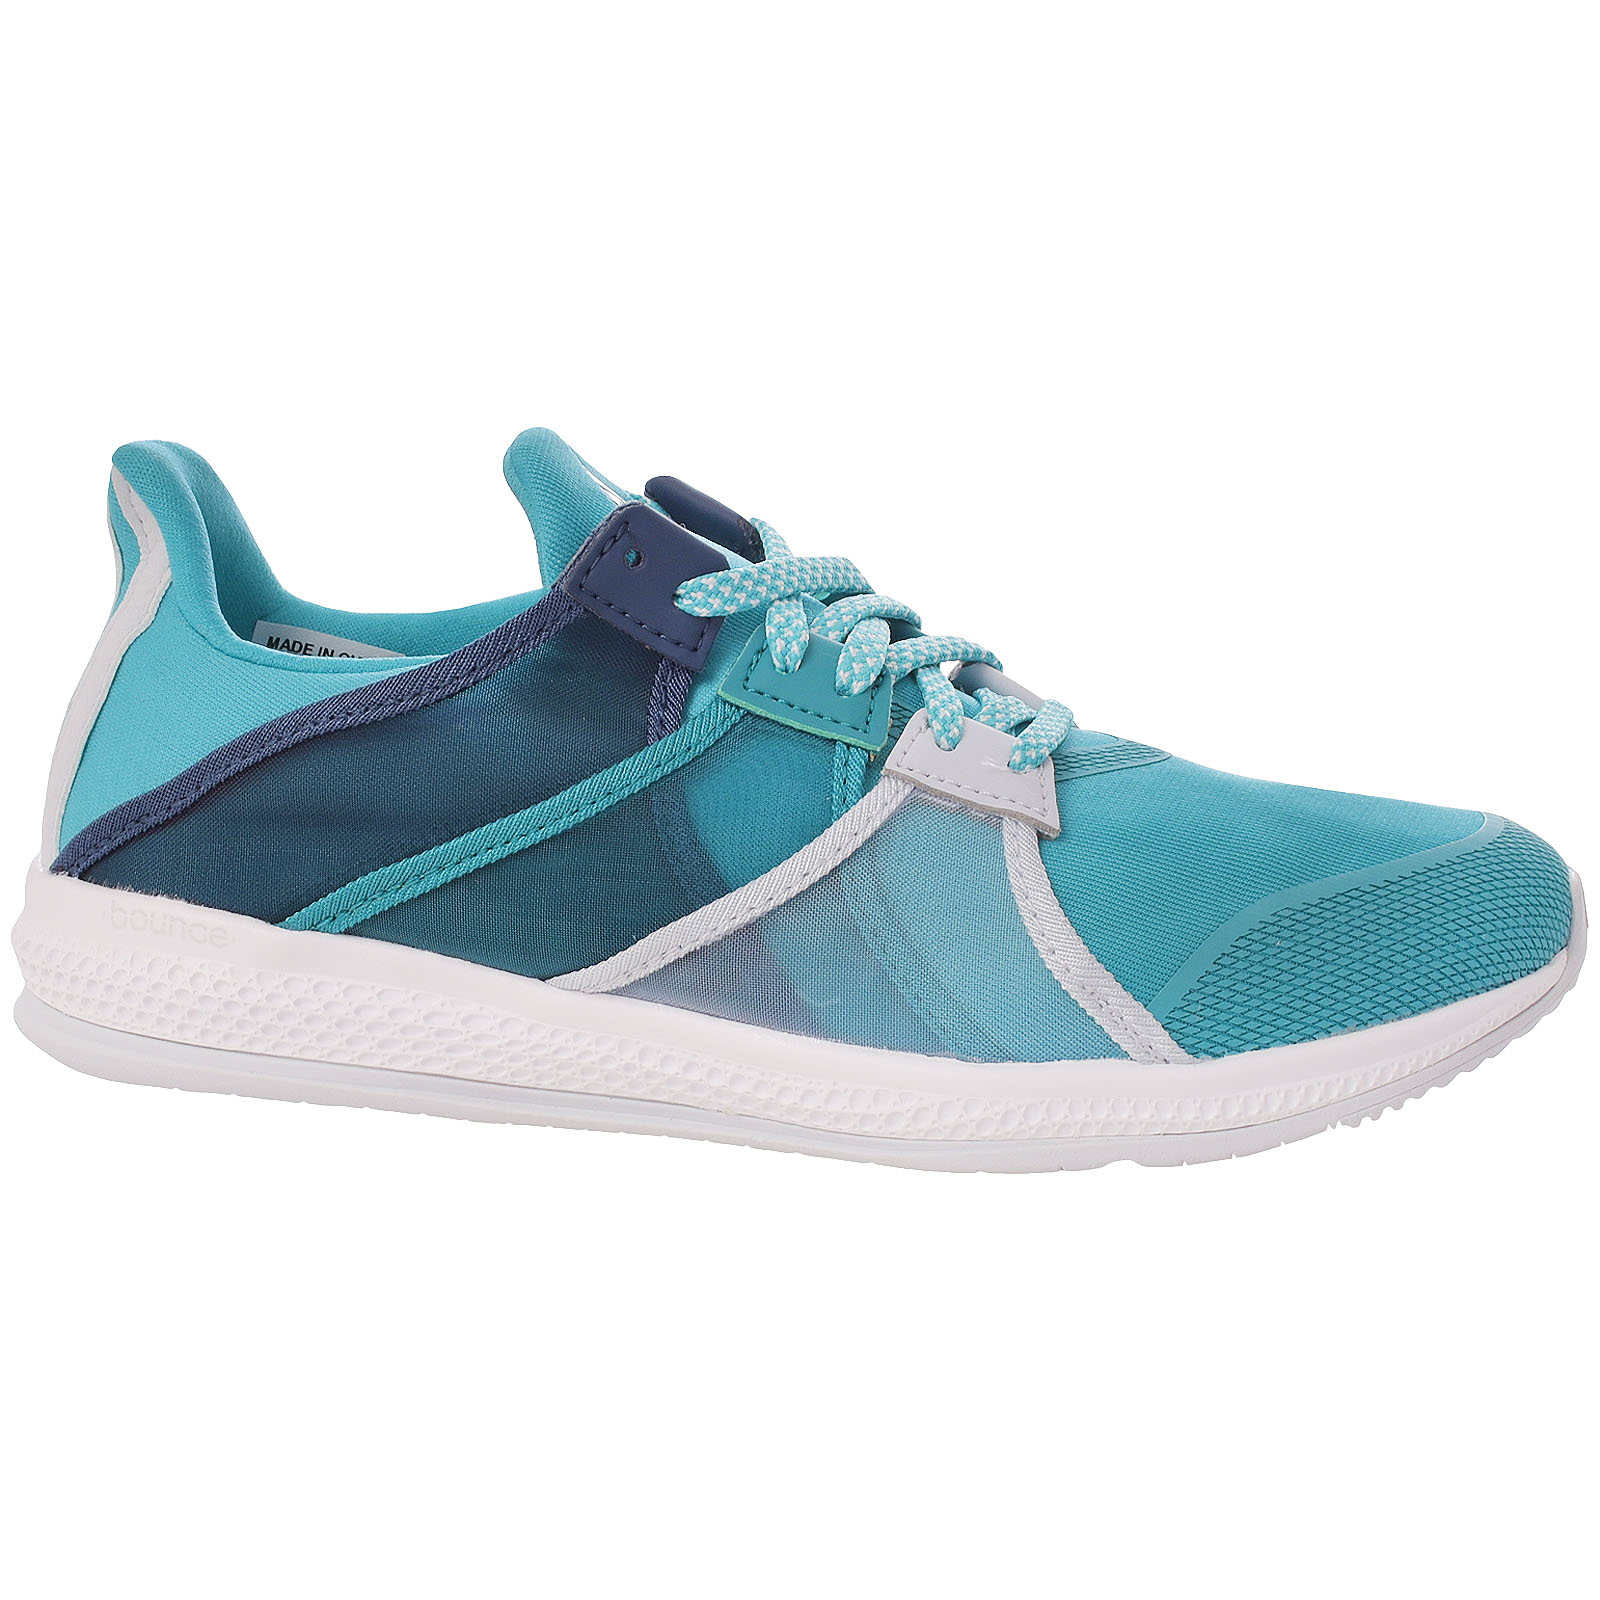 info for aca51 feb2b Details about adidas Performance Womens Gymbreaker Bounce Training Shoes  Sneakers Trainers